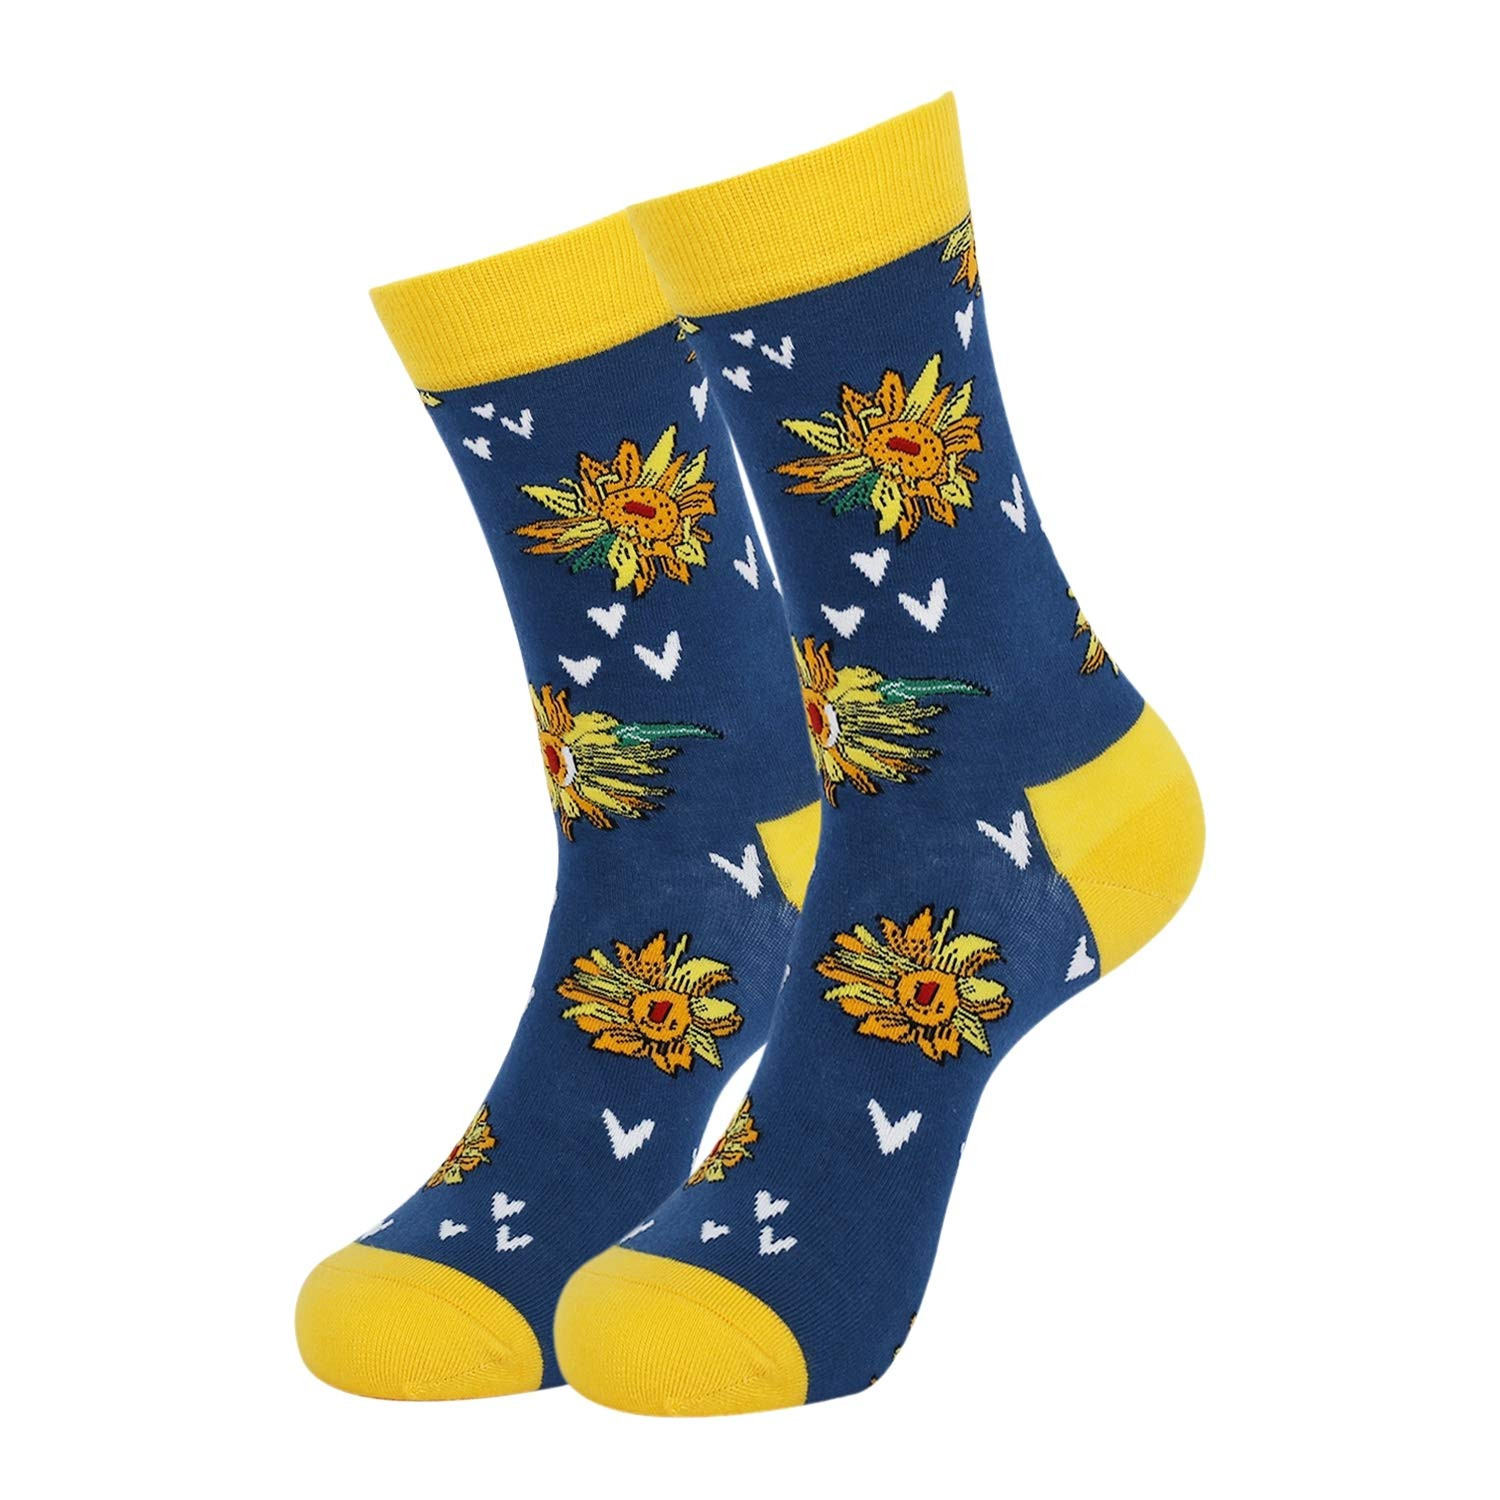 Beautiful socks with sunflowers